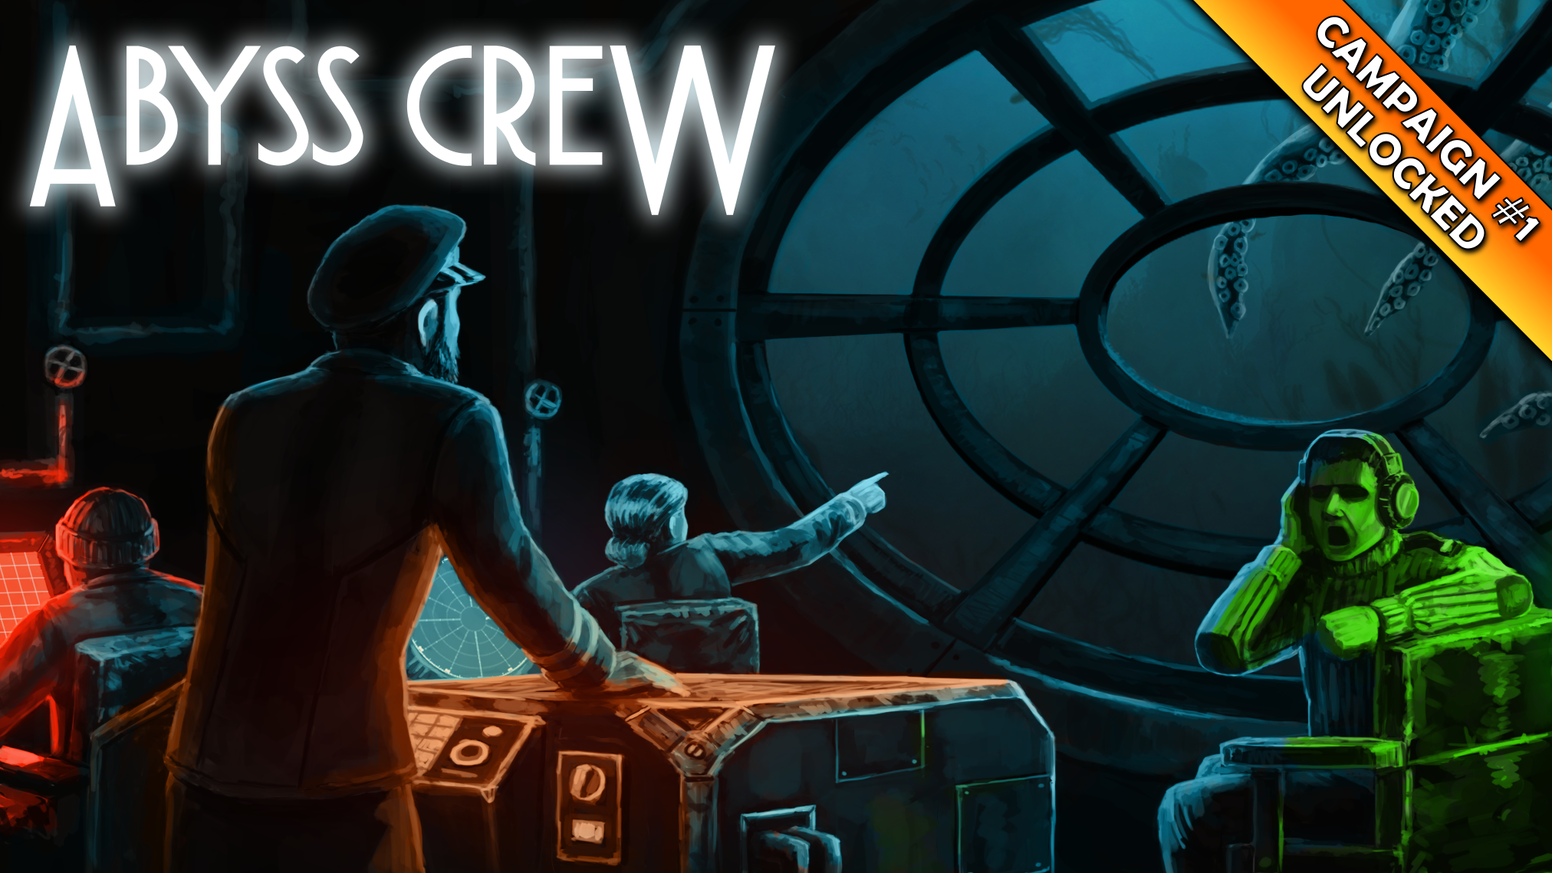 Abyss Crew is a co-op exploration videogame aboard a submarine, set in a steampunk universe.